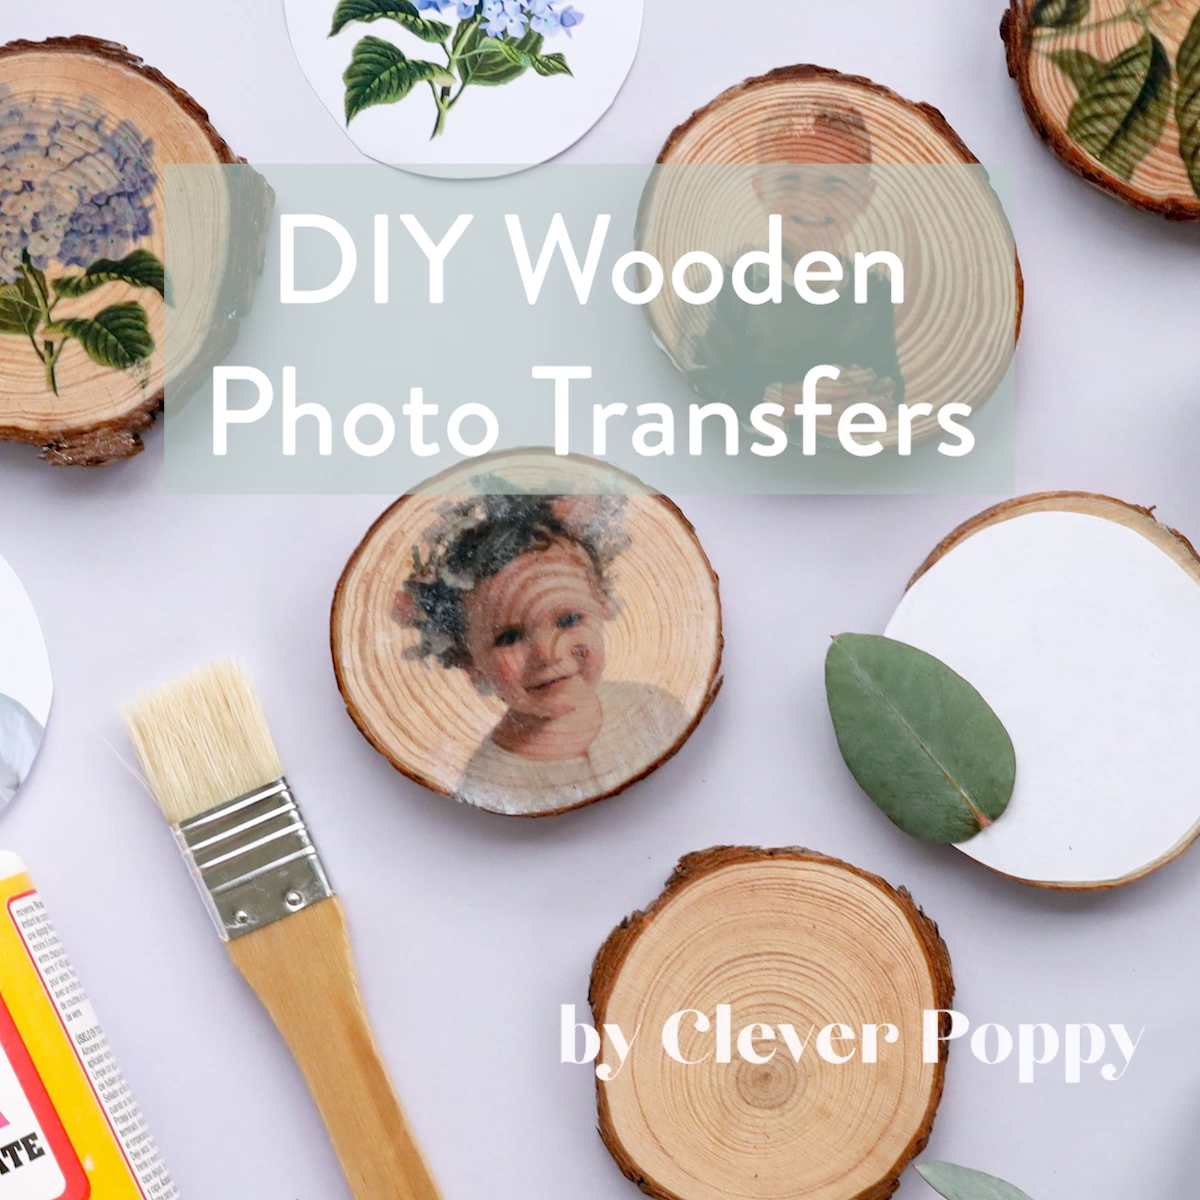 DIY Wooden Photo Transfers - Clever Poppy